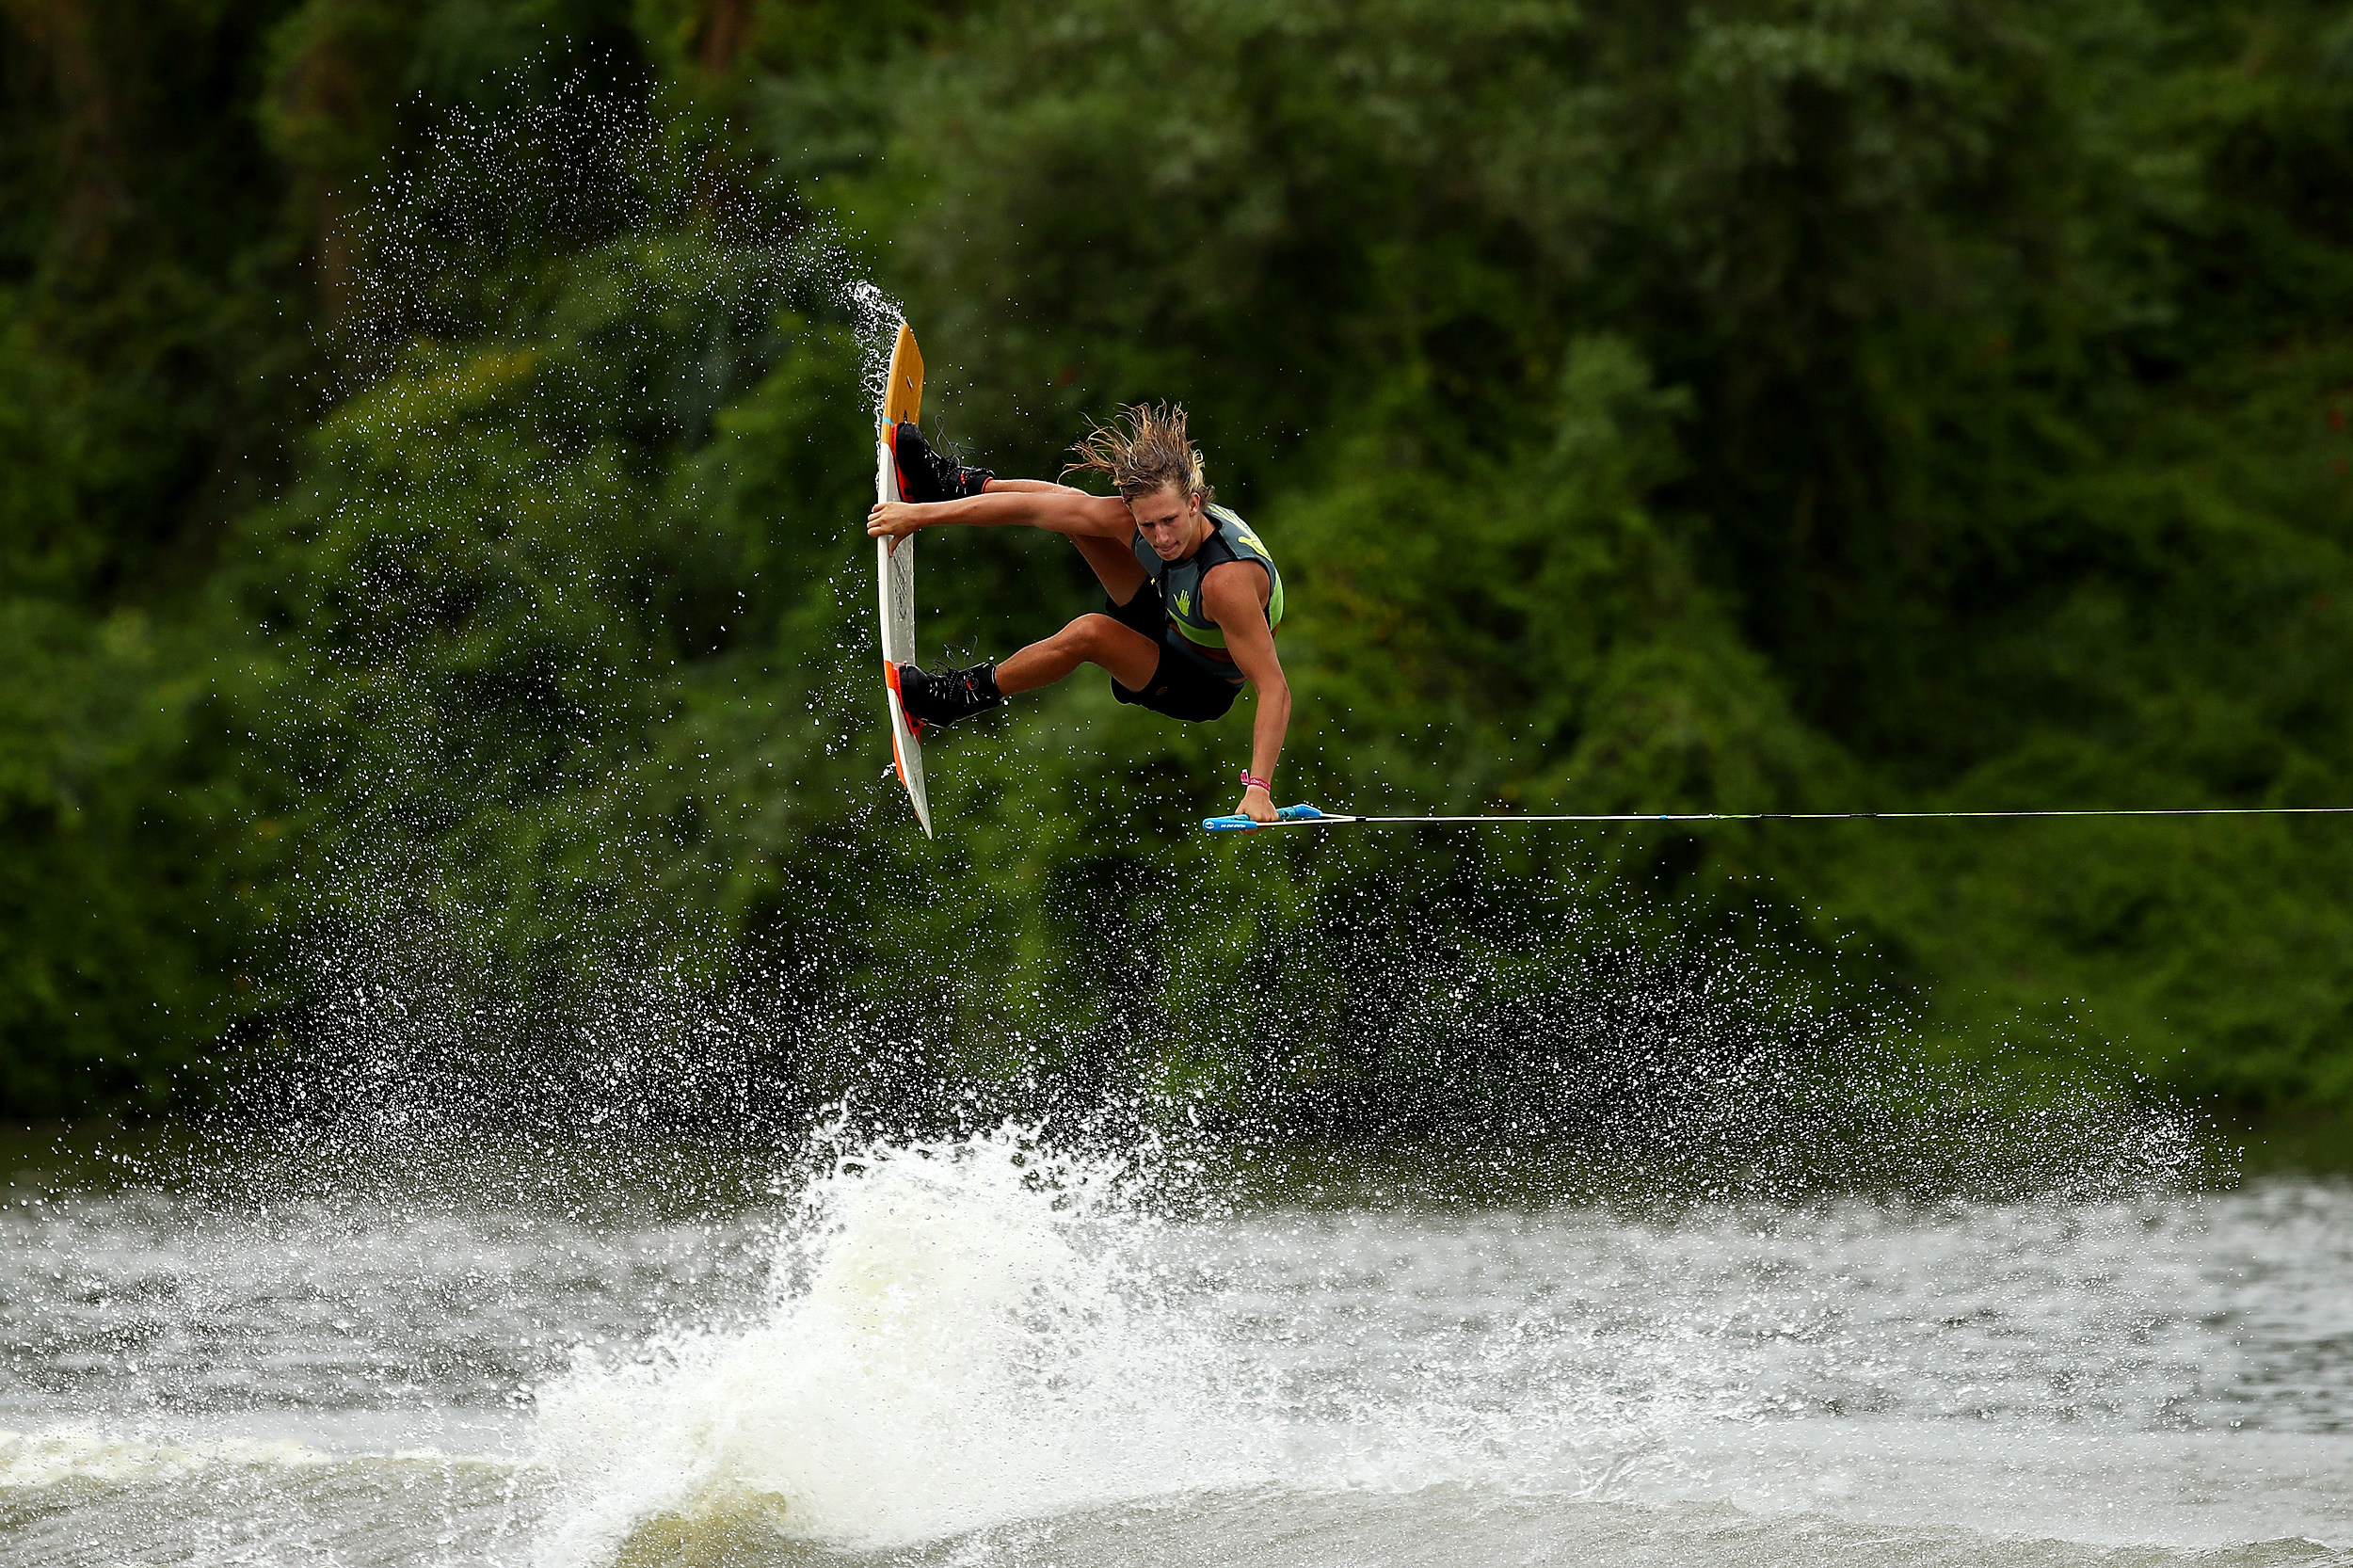 Wake-boarding Coming To Fruita